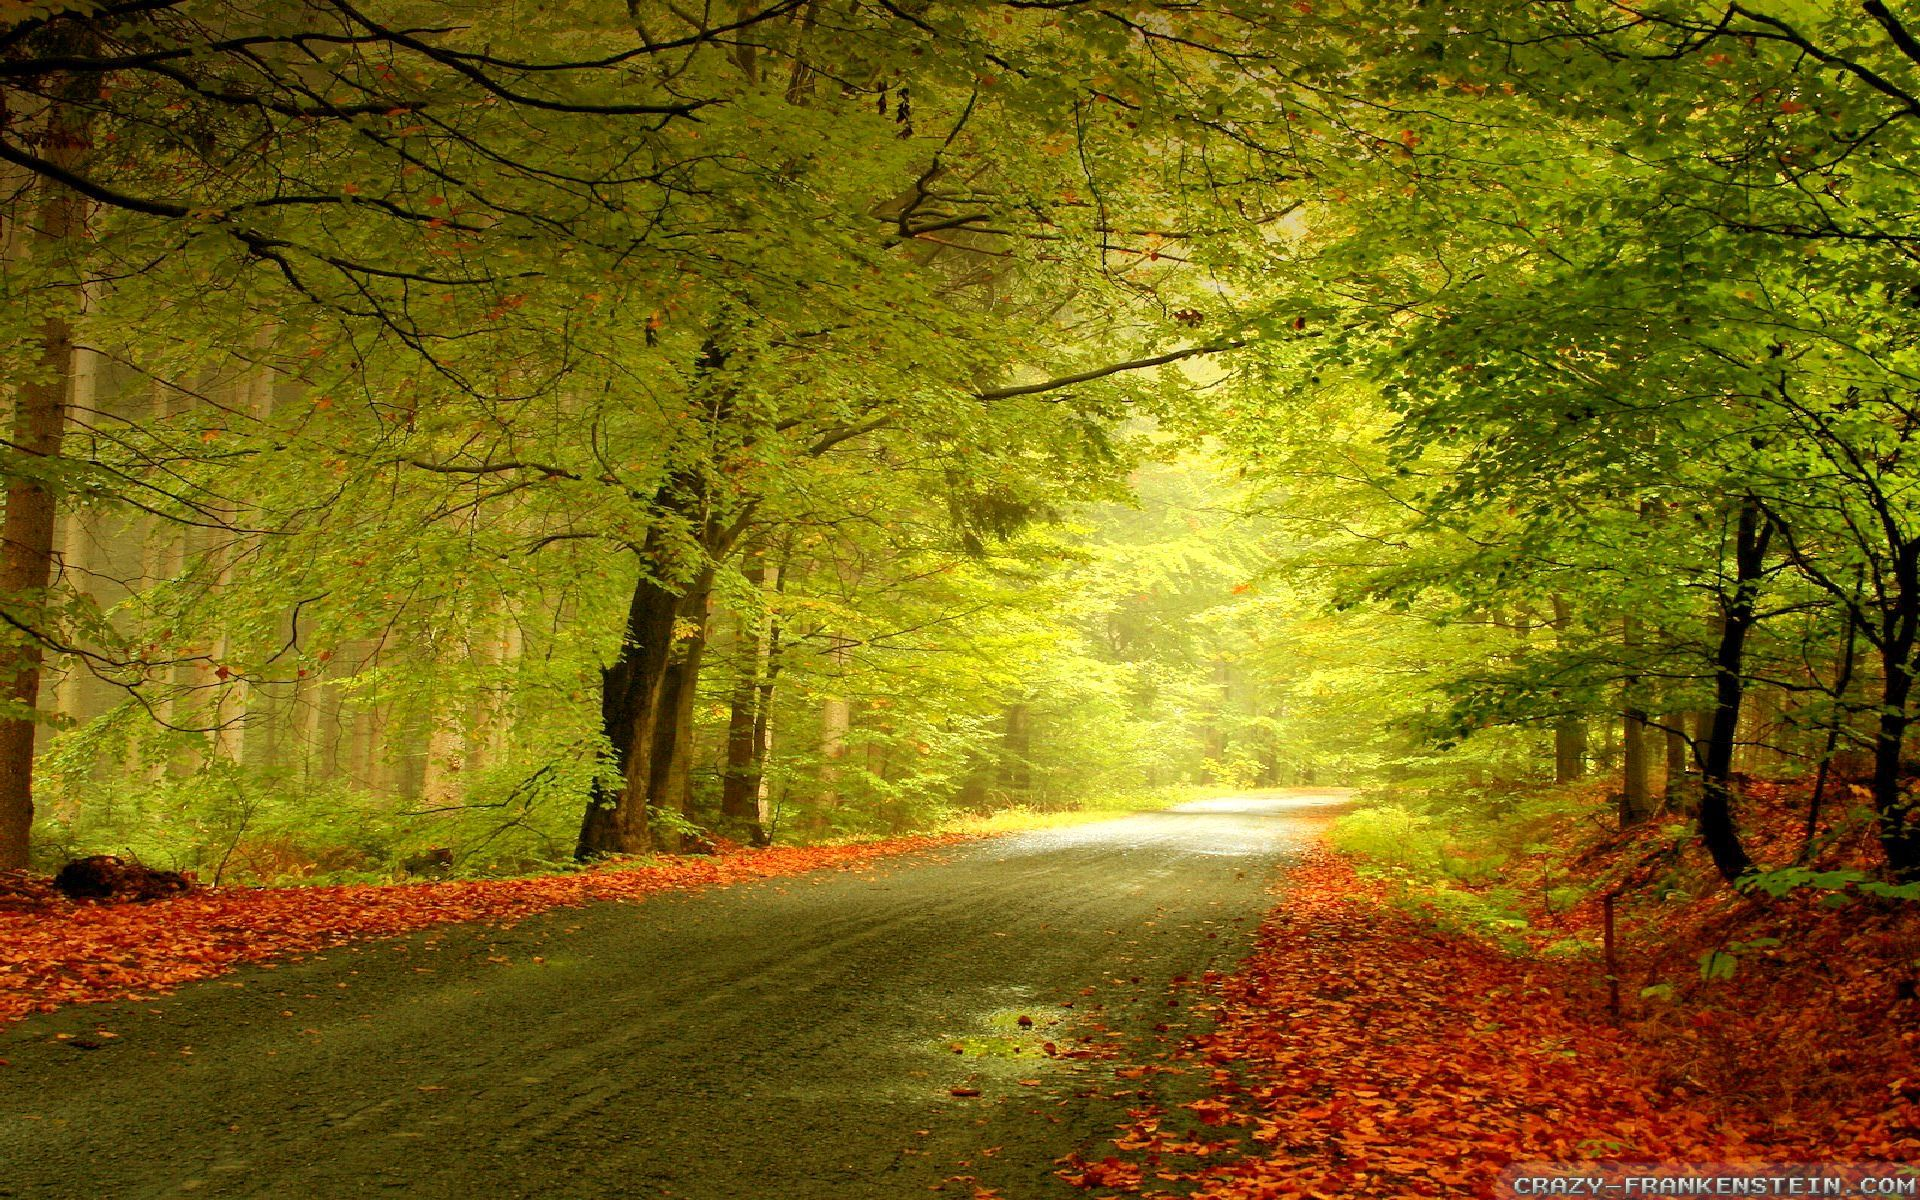 Free Wallpaper Fall Scenes Autumn Woods Wallpapers Seasonal Crazy Frankenstein